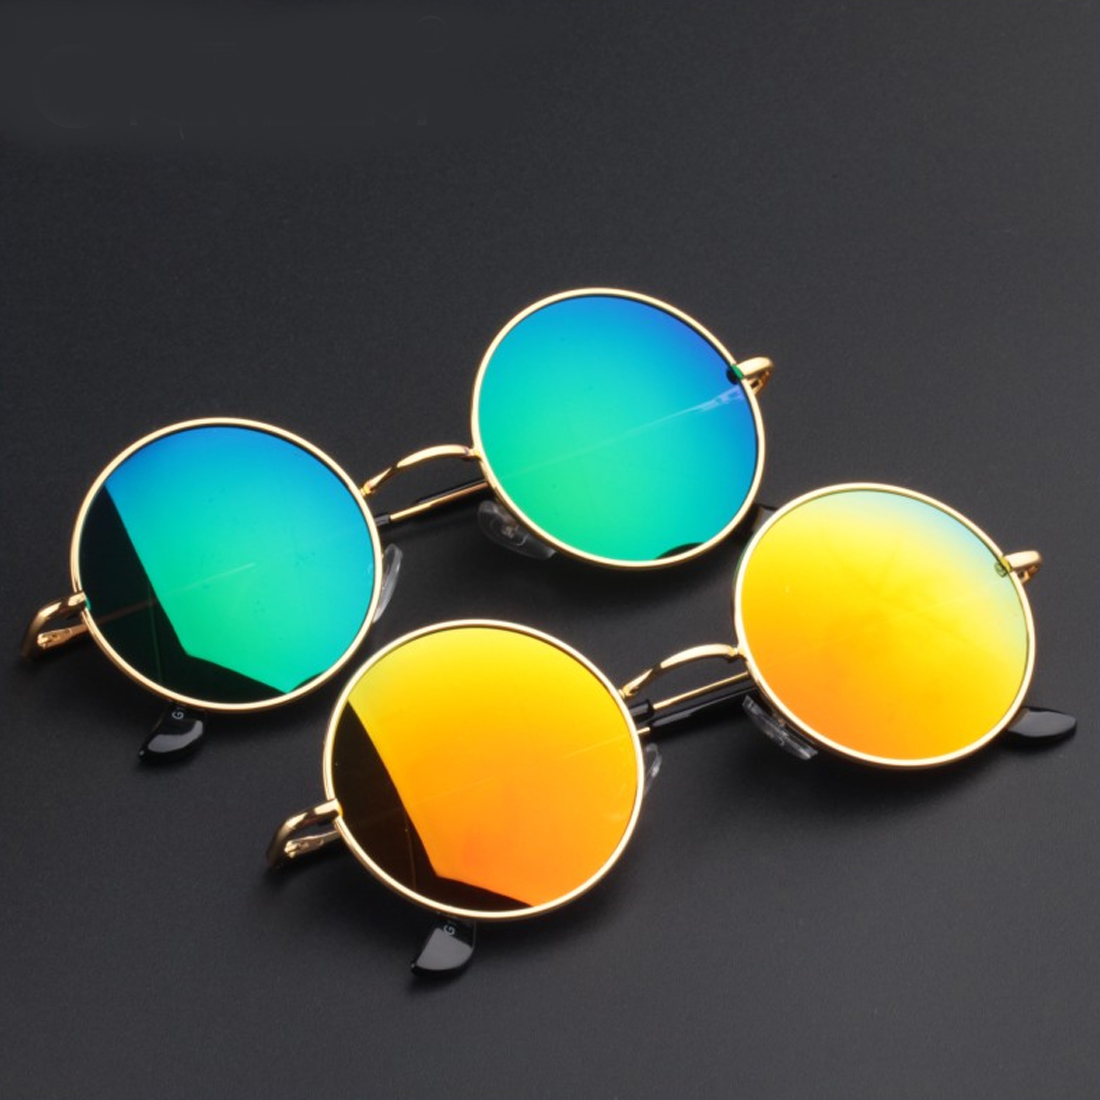 Retro Fake Myopia Eyeglasses Frame Round Metal Frame Women Men Sunglasses Polarized glasses in Men 39 s Eyewear Frames from Apparel Accessories